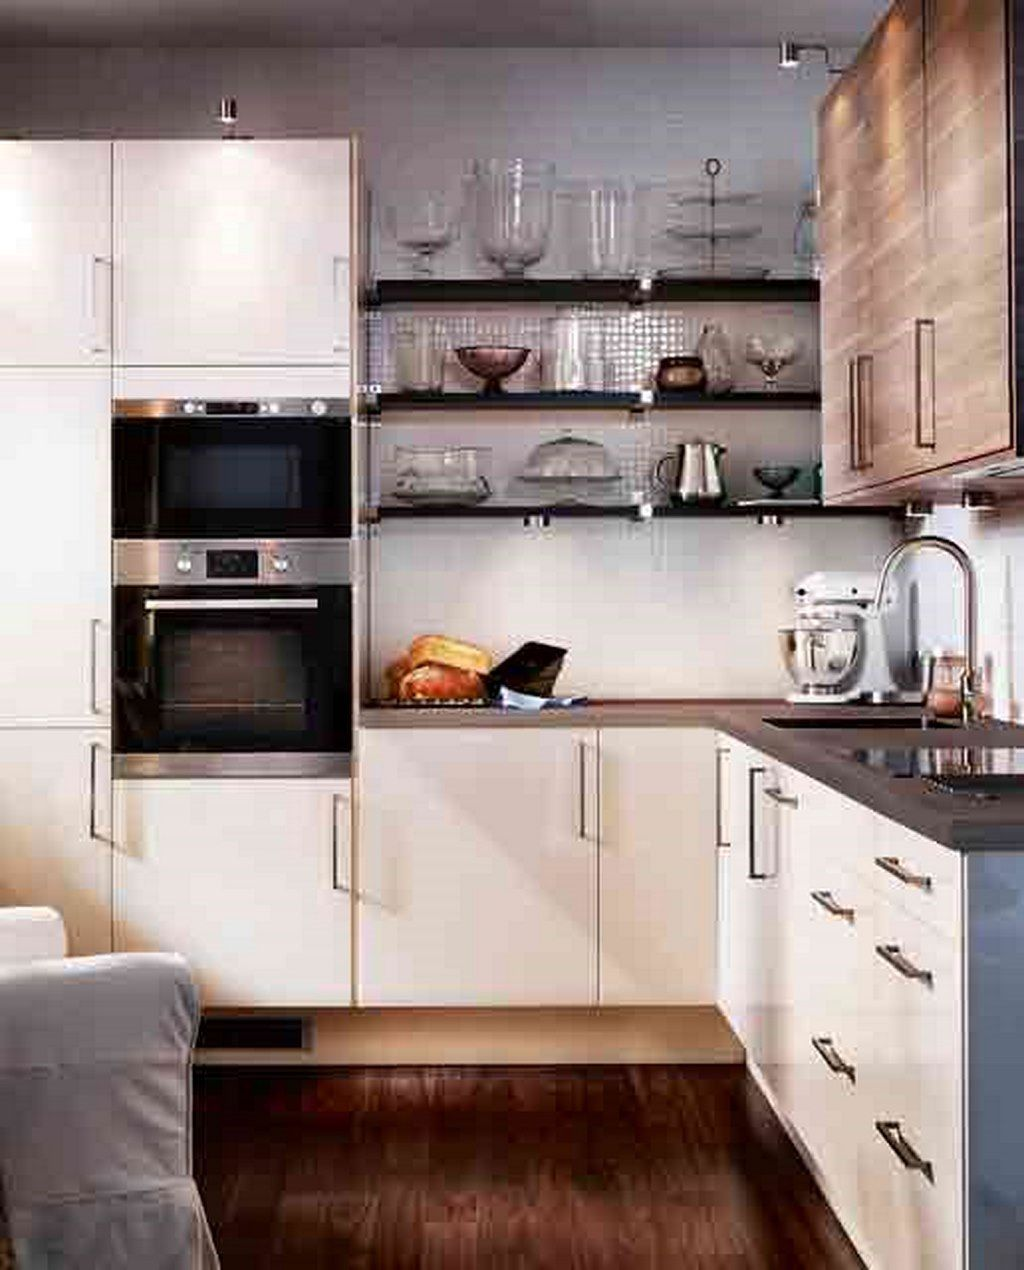 78+ images about small kitchen dreams on pinterest   kitchen small